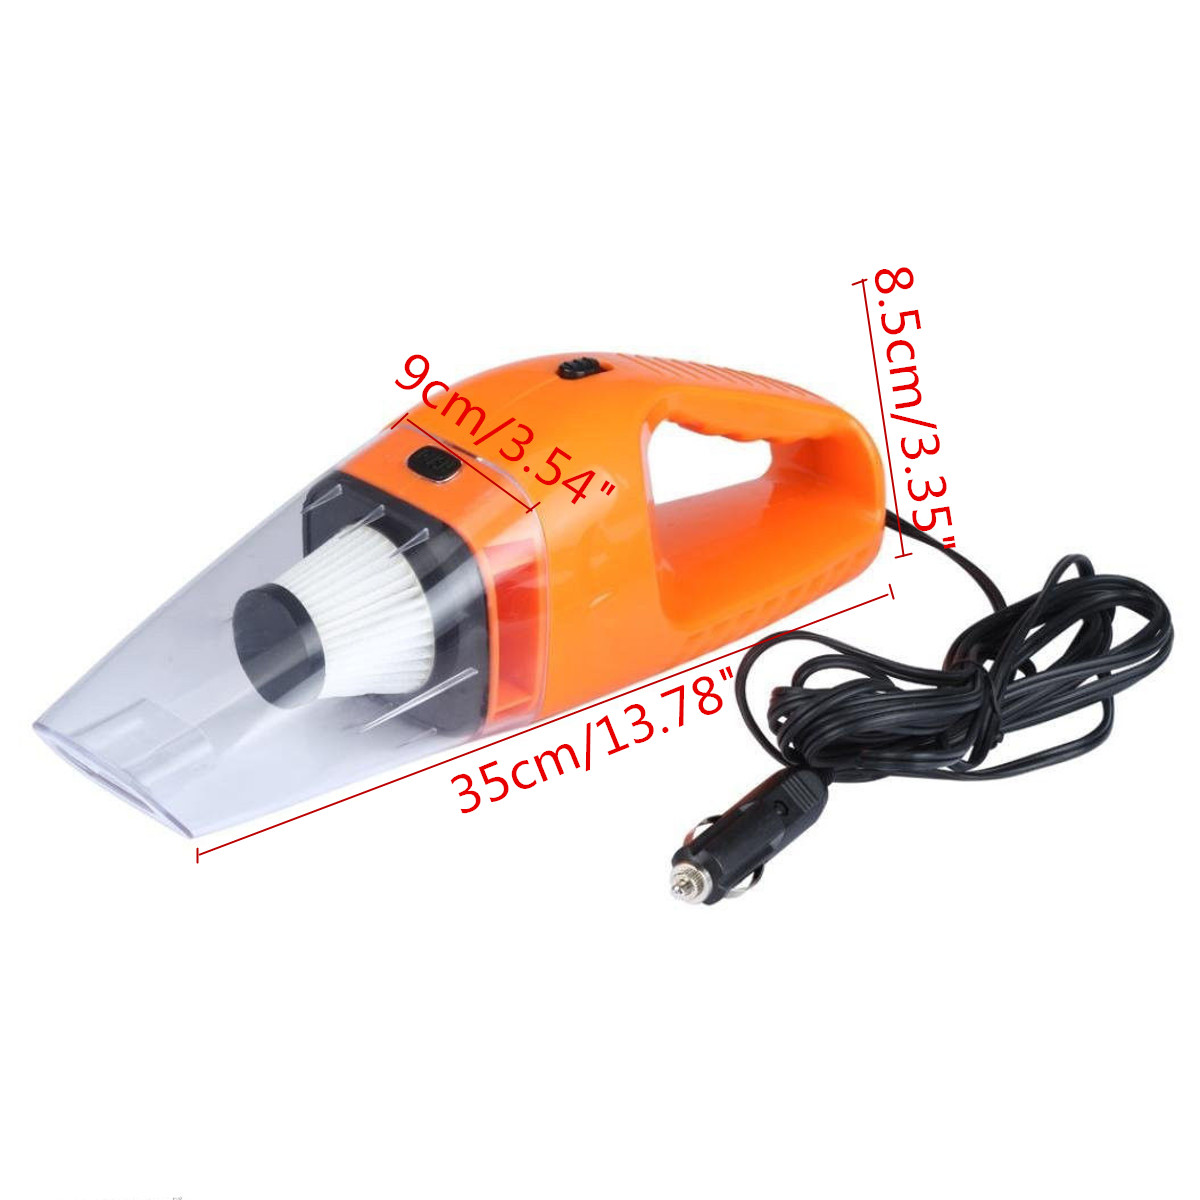 12V 120W Mini Handheld Vacuum Cleaner Useful In-Car Portable Wet & Dry Car Home